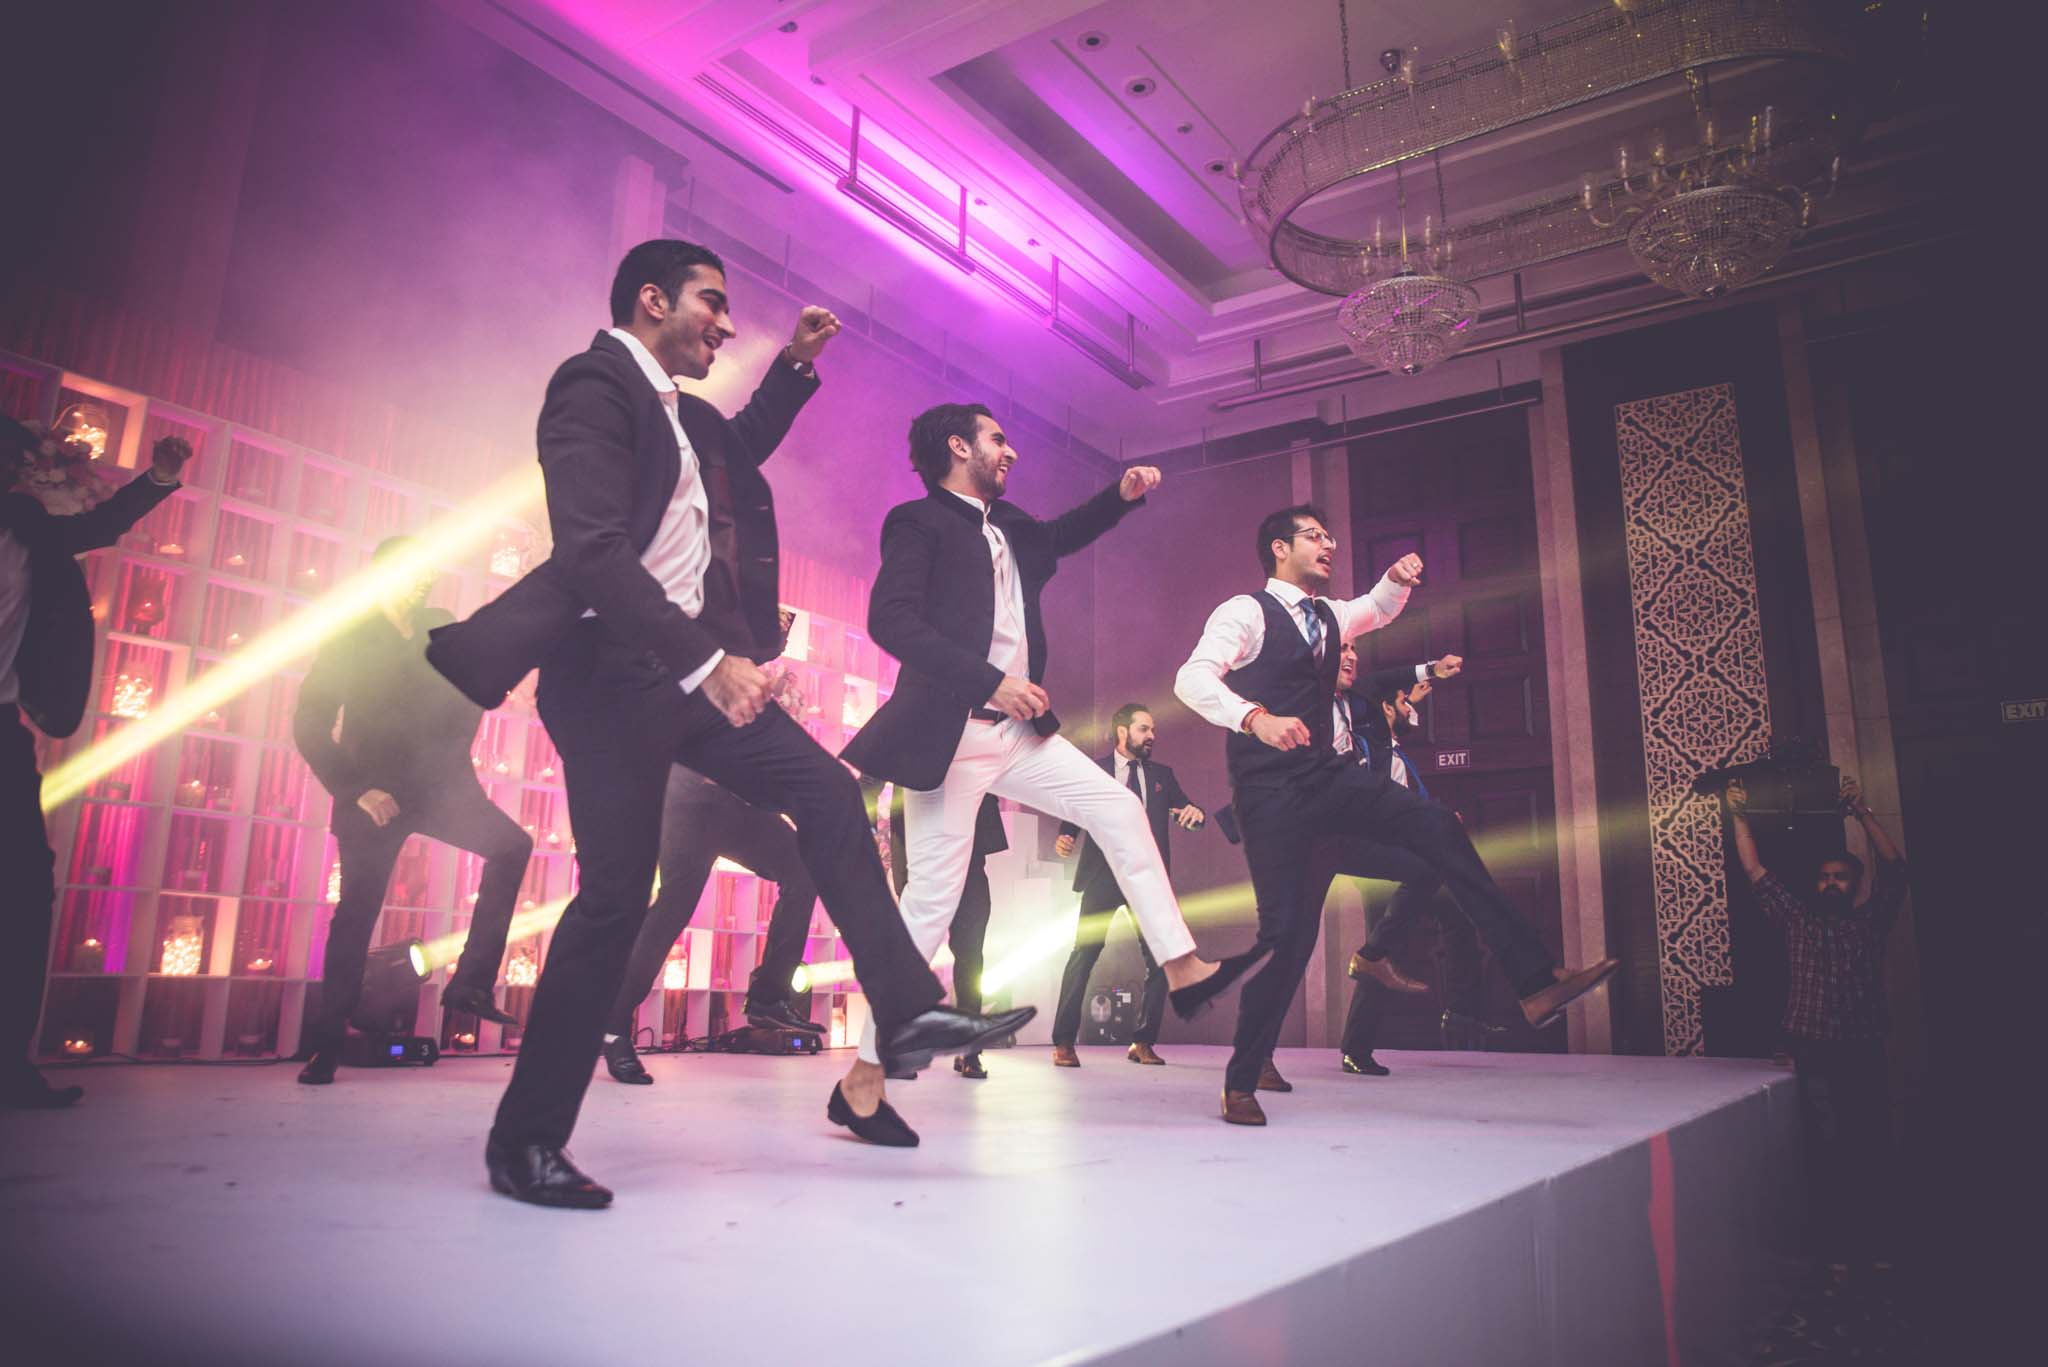 StRegis-Palladium-Mumbai-Candid-Wedding-Photography-80